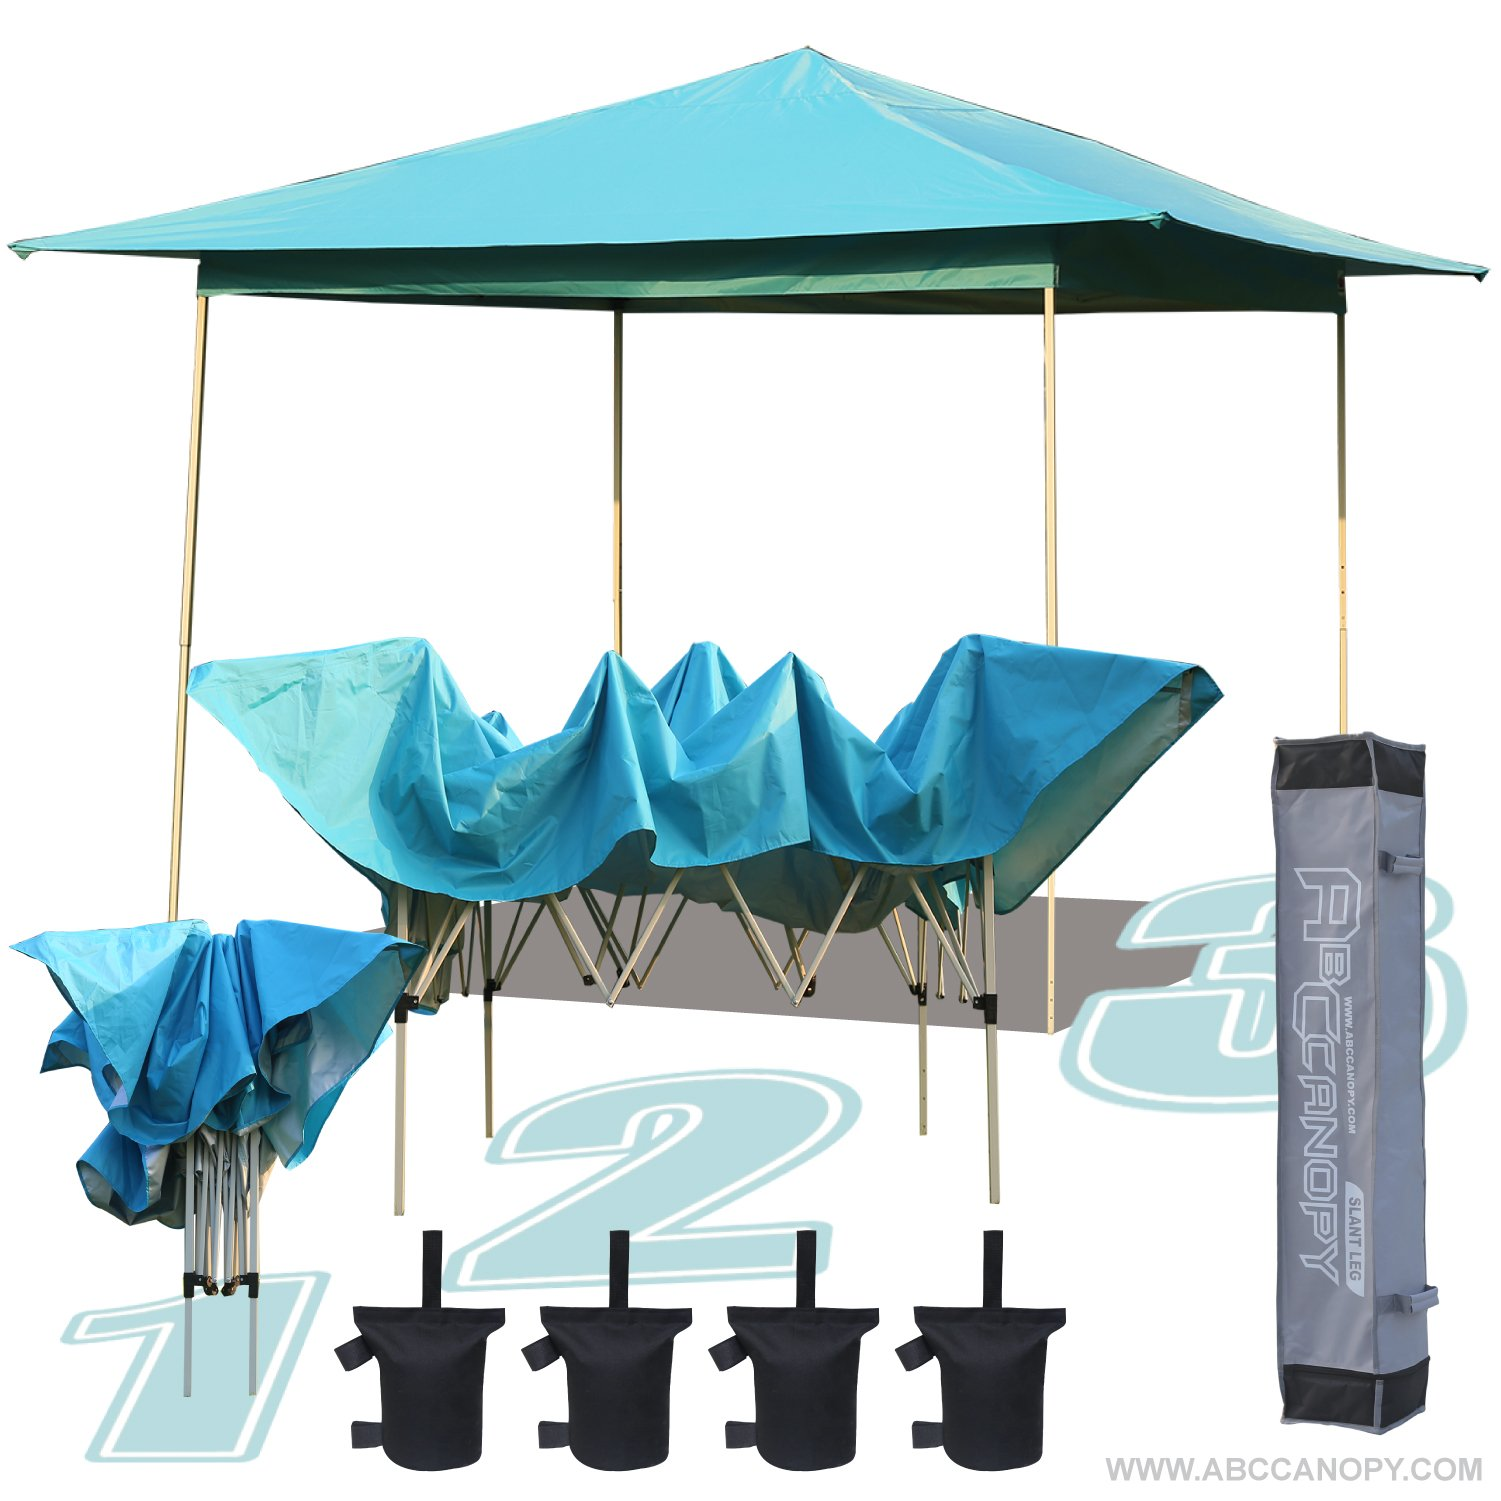 ABCCANOPY 13' x 13' Instant Shelter Pop Up Canopy Gazebo for Shade in Backyard, Party, Event with Carry Bag & weight bag